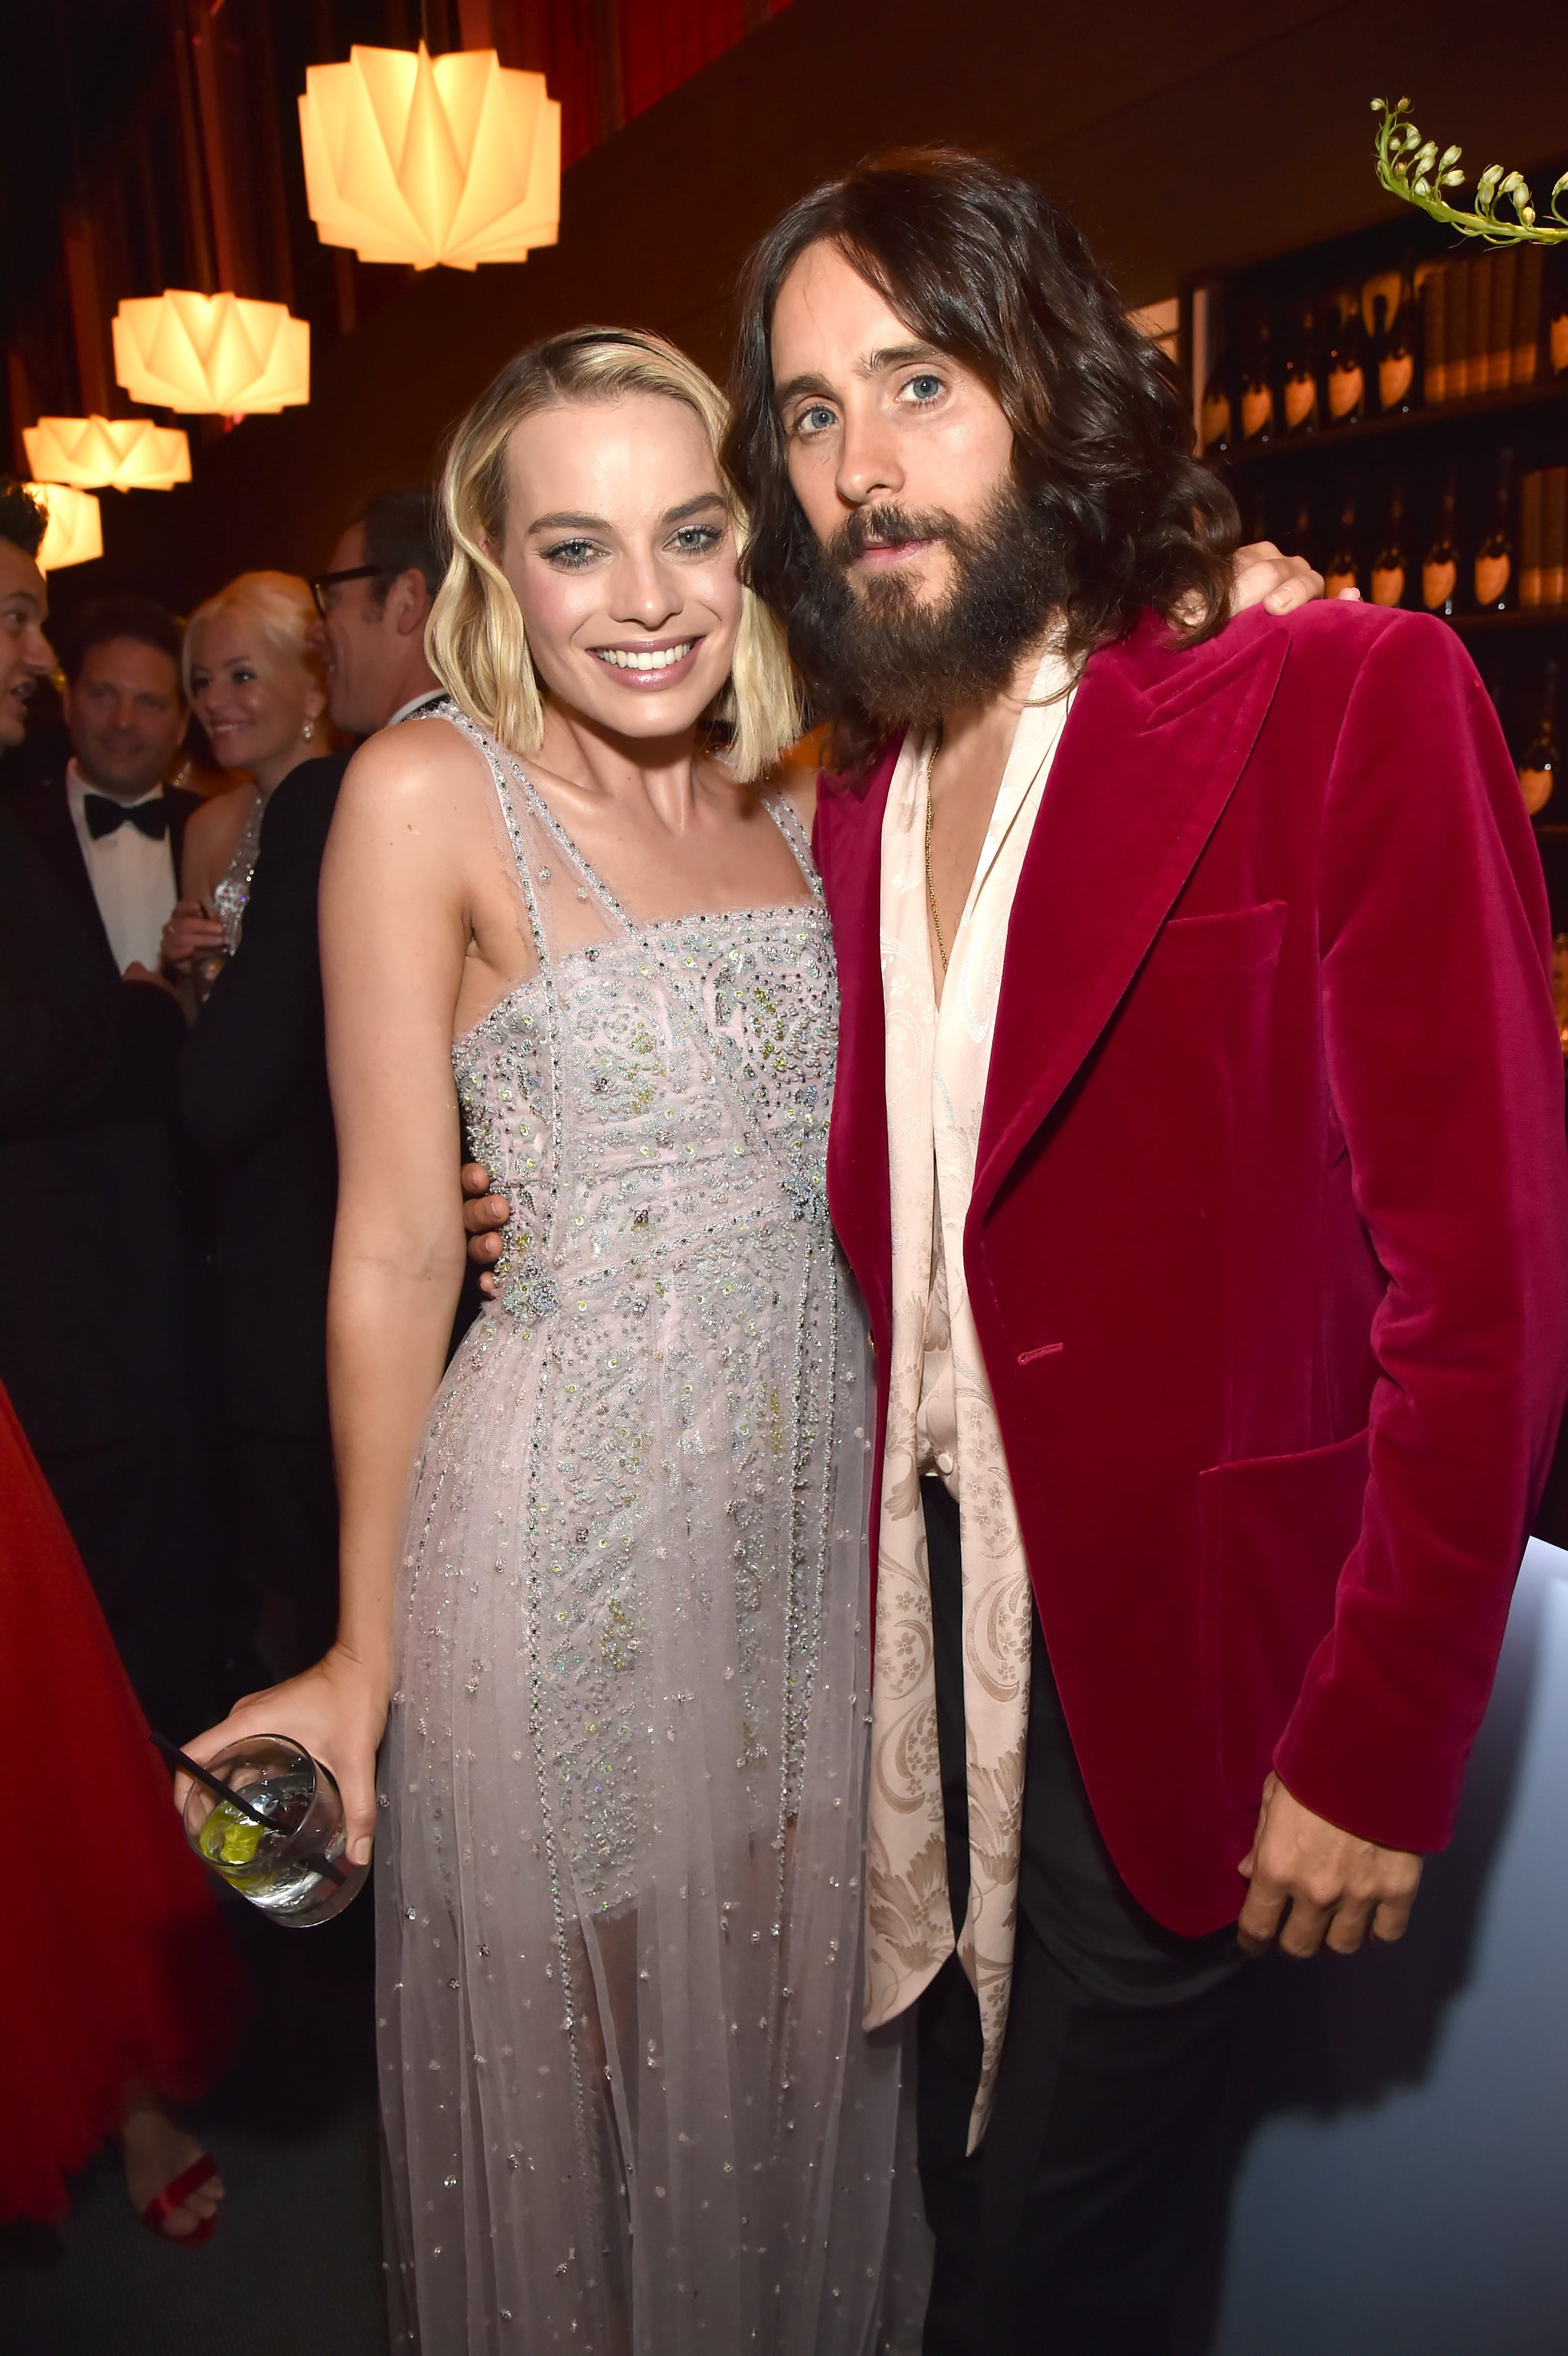 BEVERLY HILLS, CA - MARCH 04:  (EXCLUSIVE ACCESS, SPECIAL RATES APPLY)  Margot Robbie and Jared Leto attend the 2018 Vanity Fair Oscar Party hosted by Radhika Jones at Wallis Annenberg Center for the Performing Arts on March 4, 2018 in Beverly Hills, California.  (Photo by Kevin Mazur/VF18/WireImage)